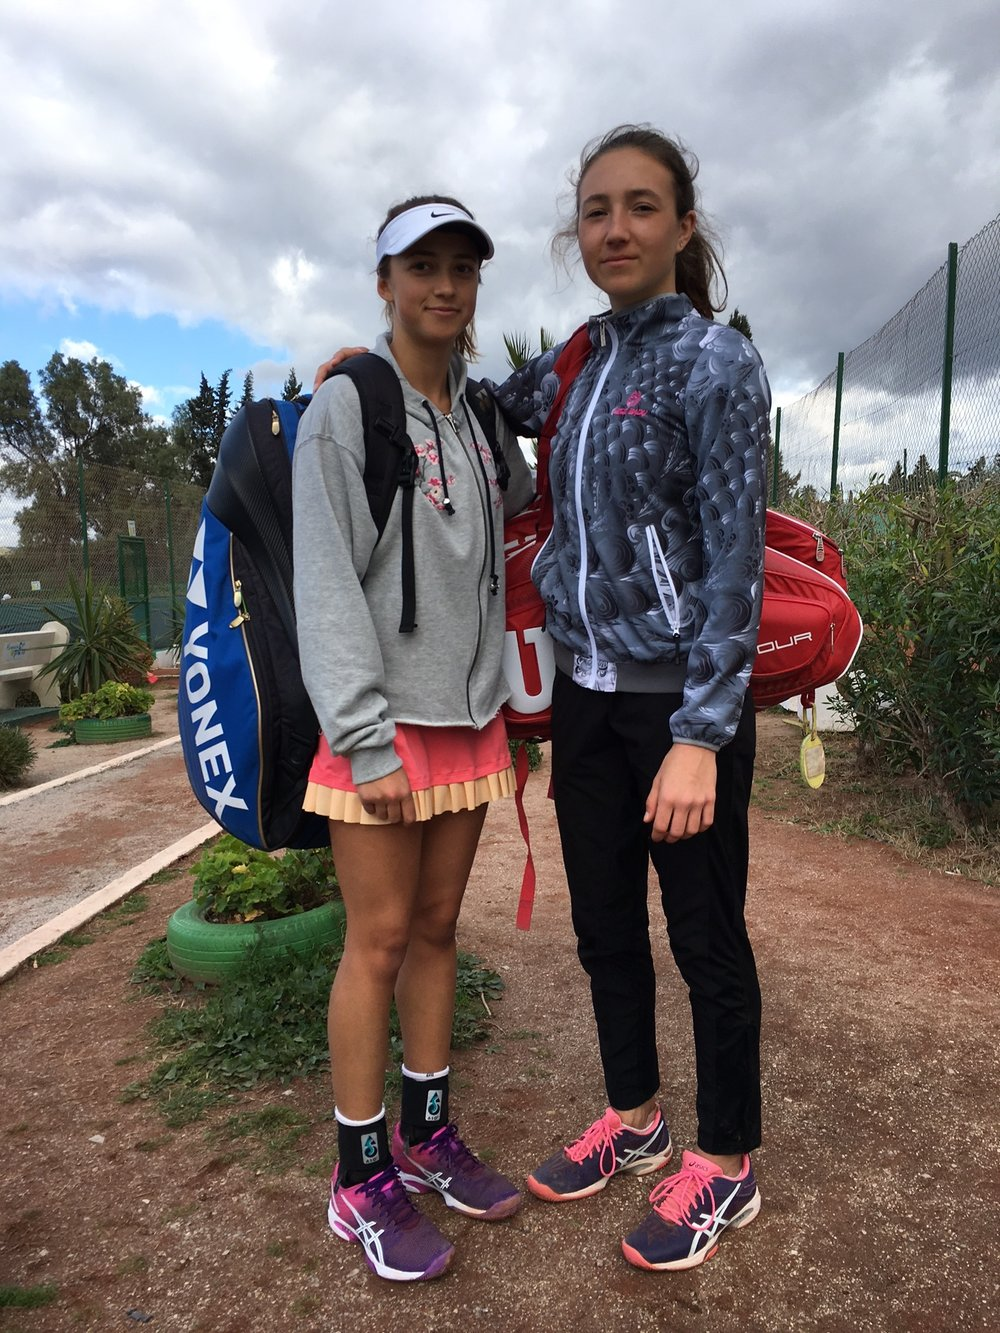 my doubles partner Oana Gavrila